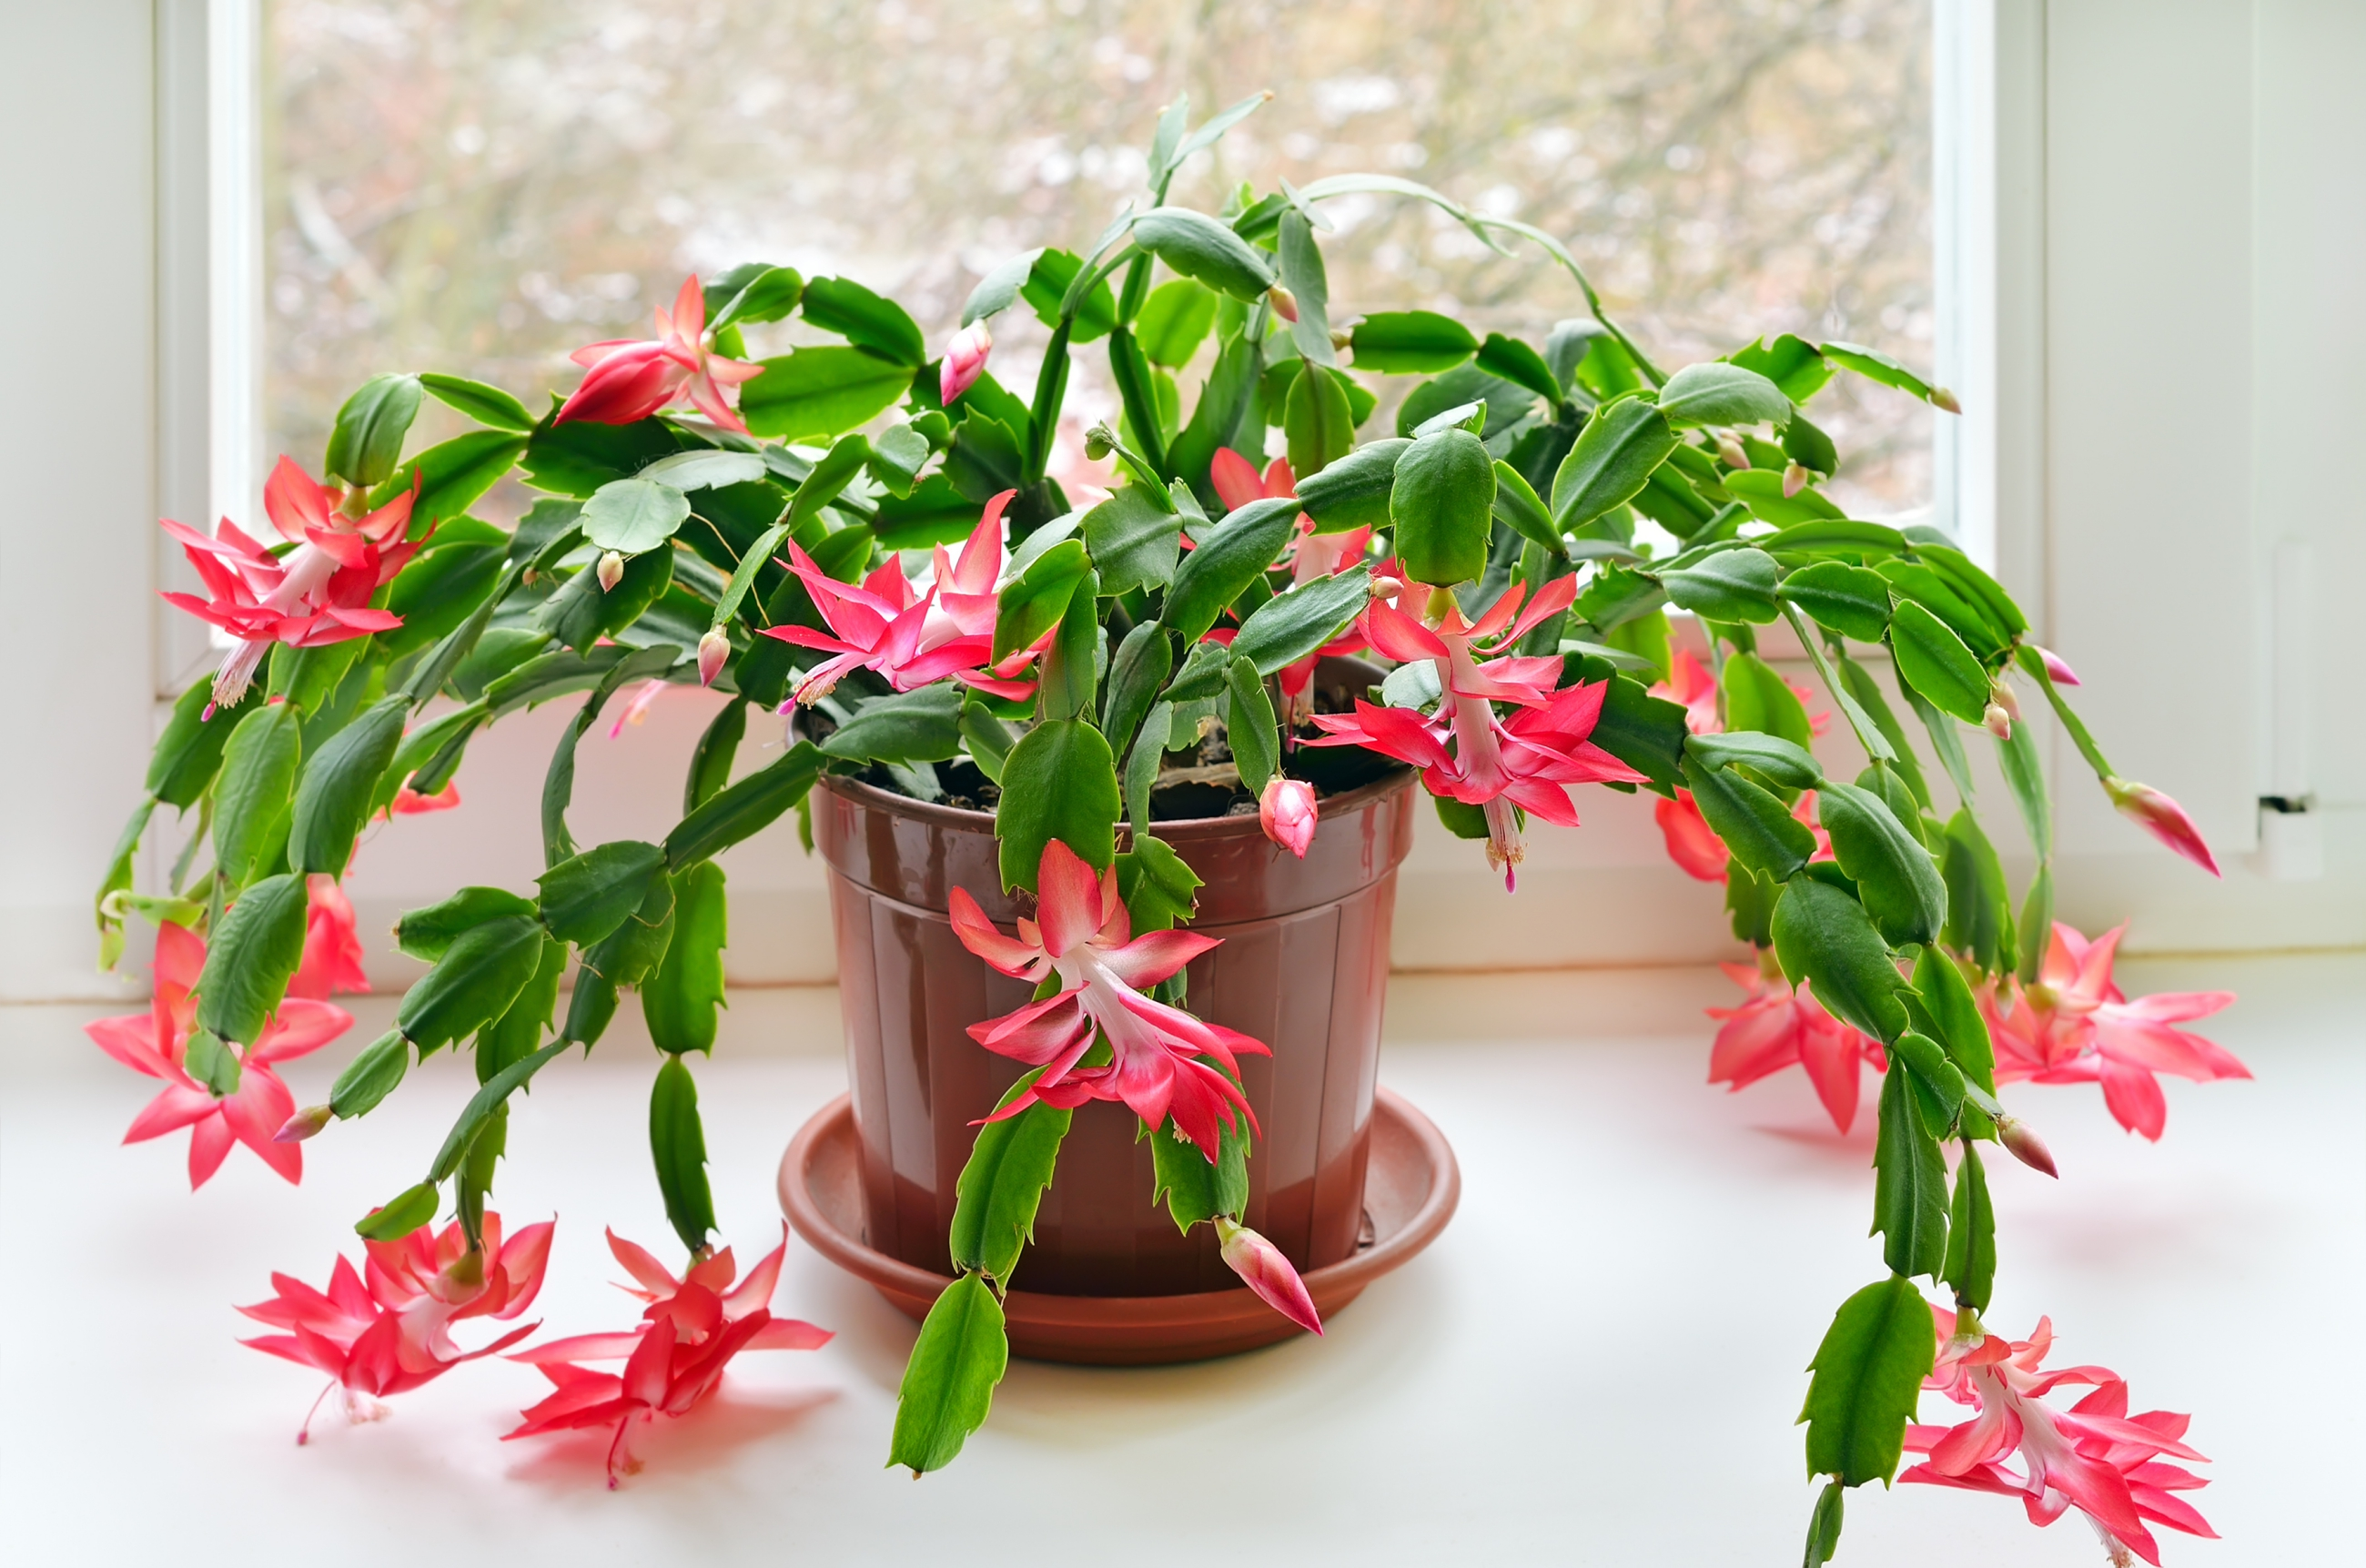 Christmas Cactus How To Care For A Christmas Cactus Houseplant The Old Farmer S Almanac